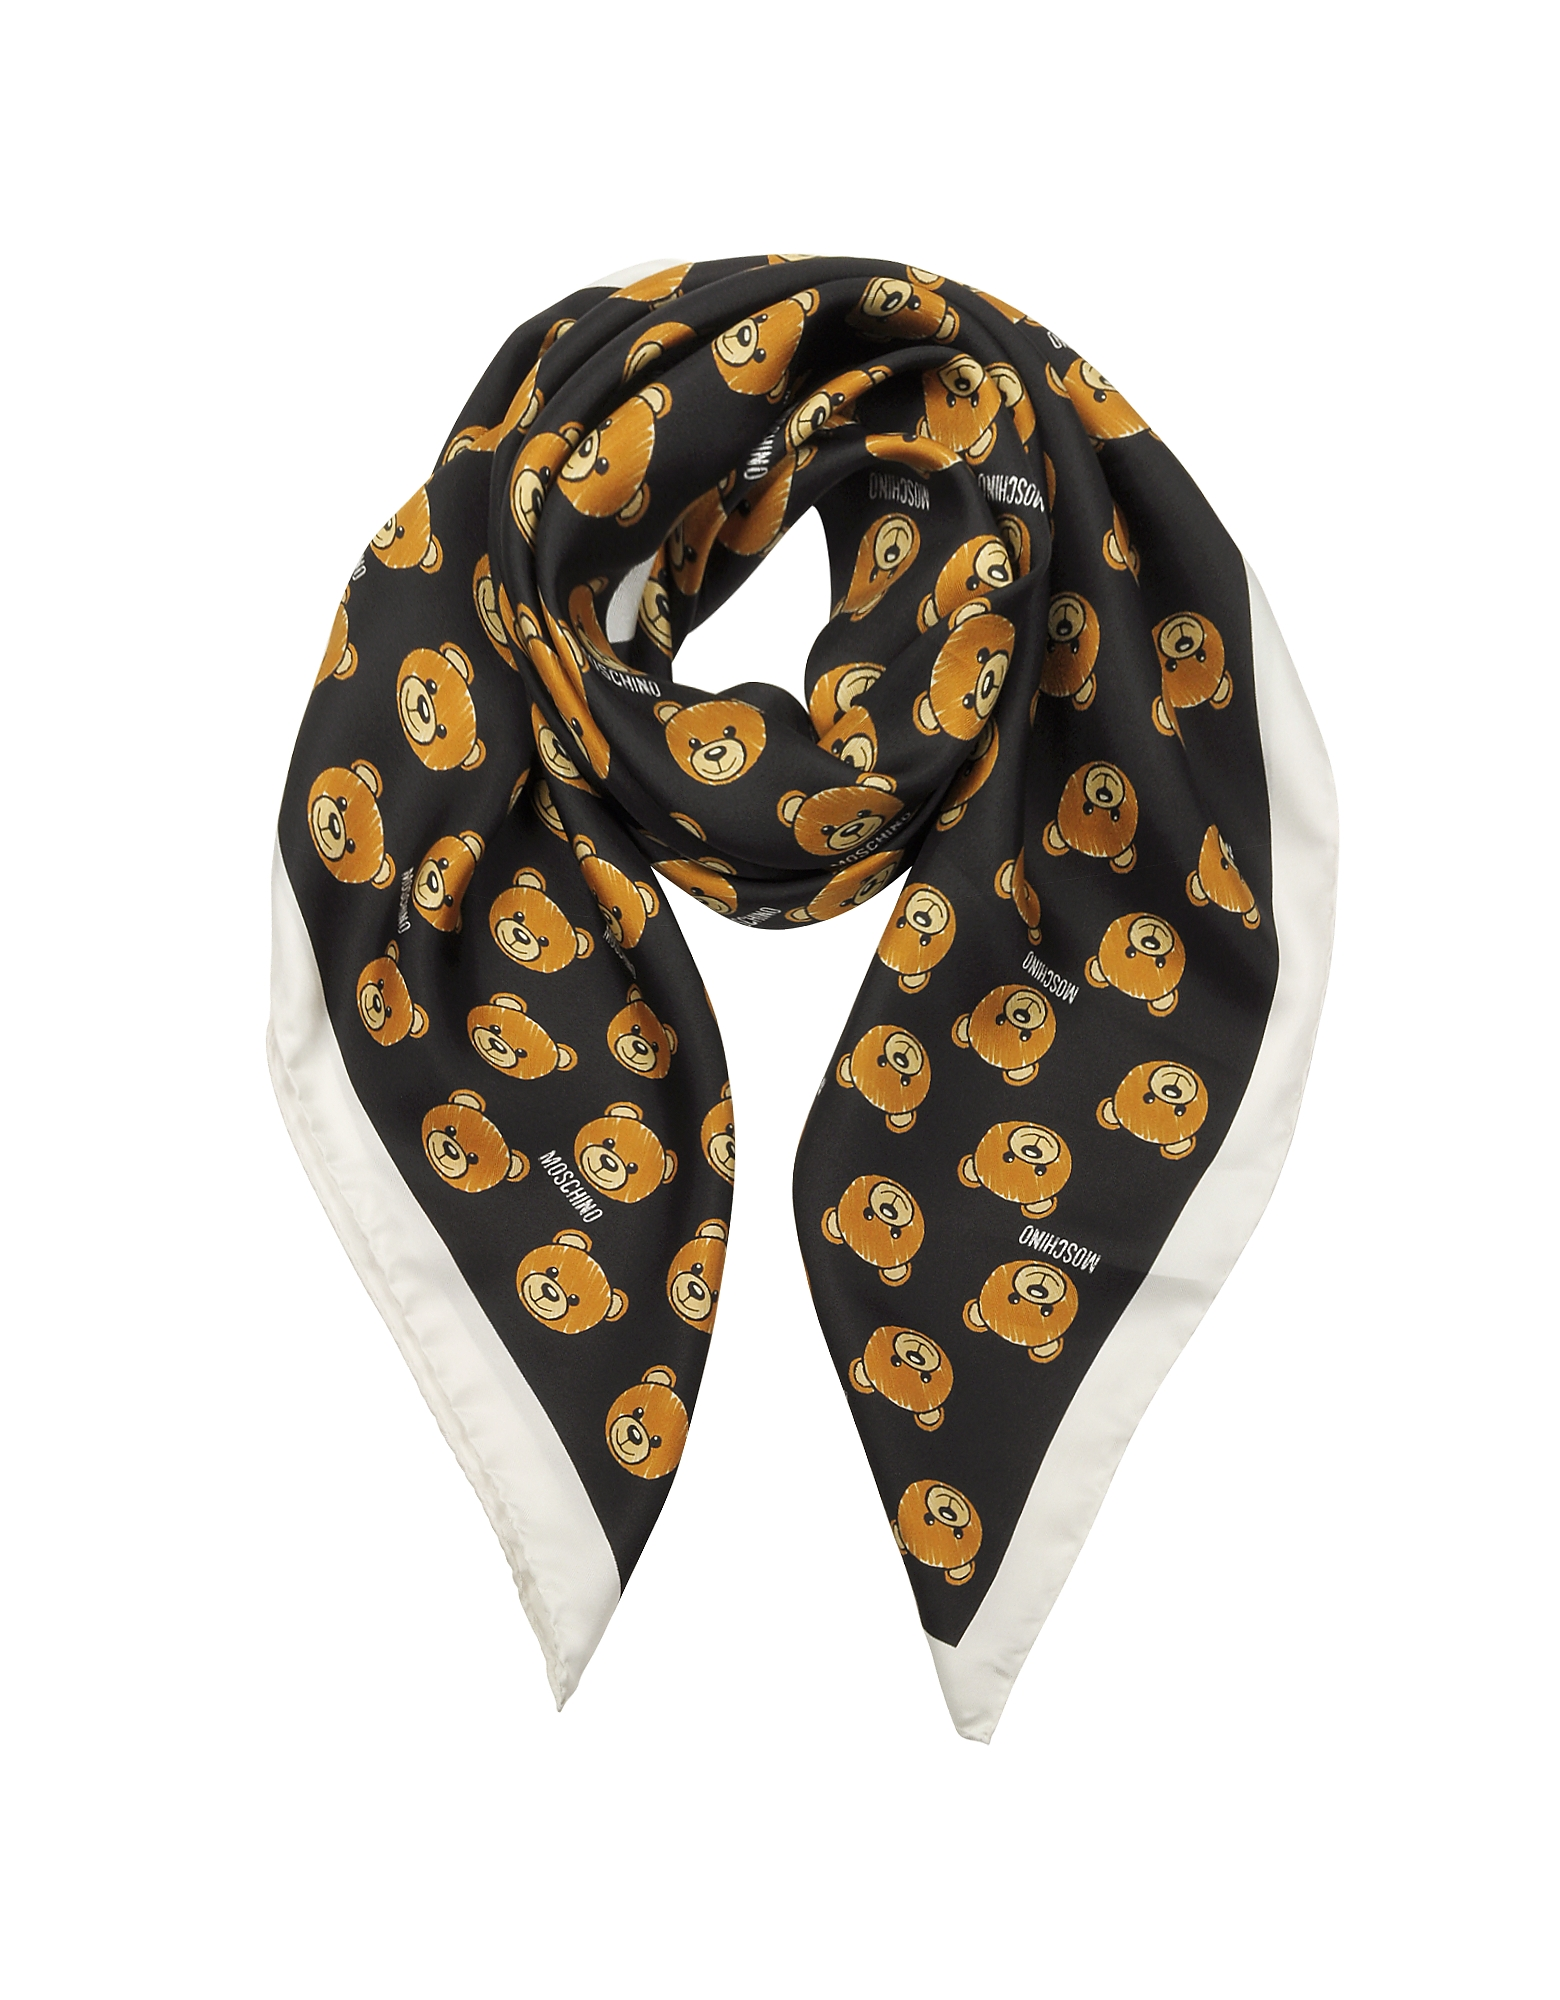 All-over Teddy Bear Printed Twill Silk Square Scarf